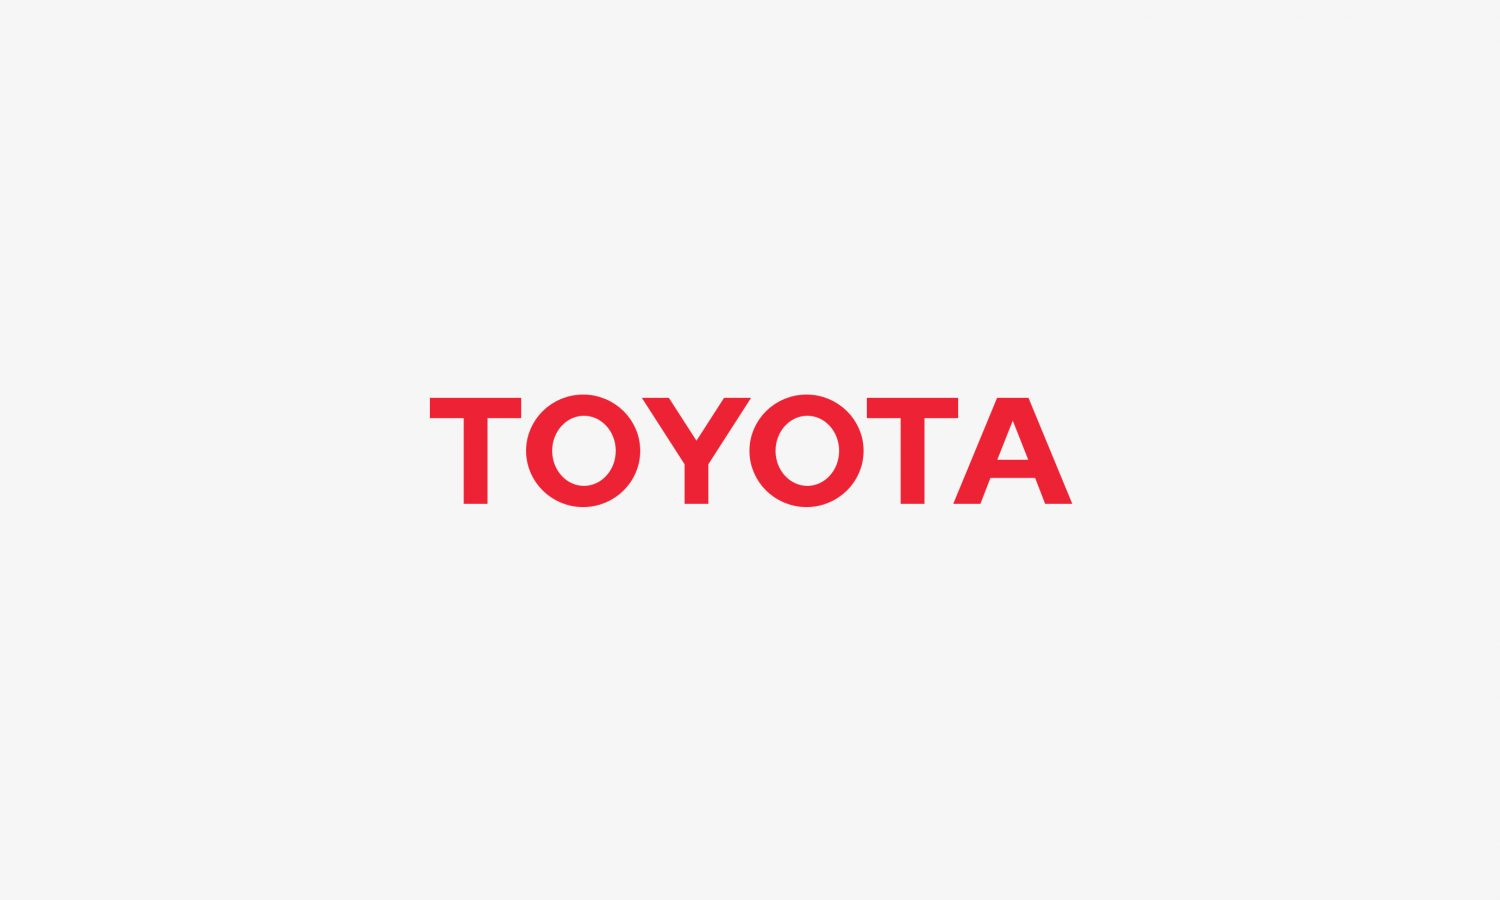 Toyota Takata Recall Media Kit:The Largest Vehicle Recall in US History